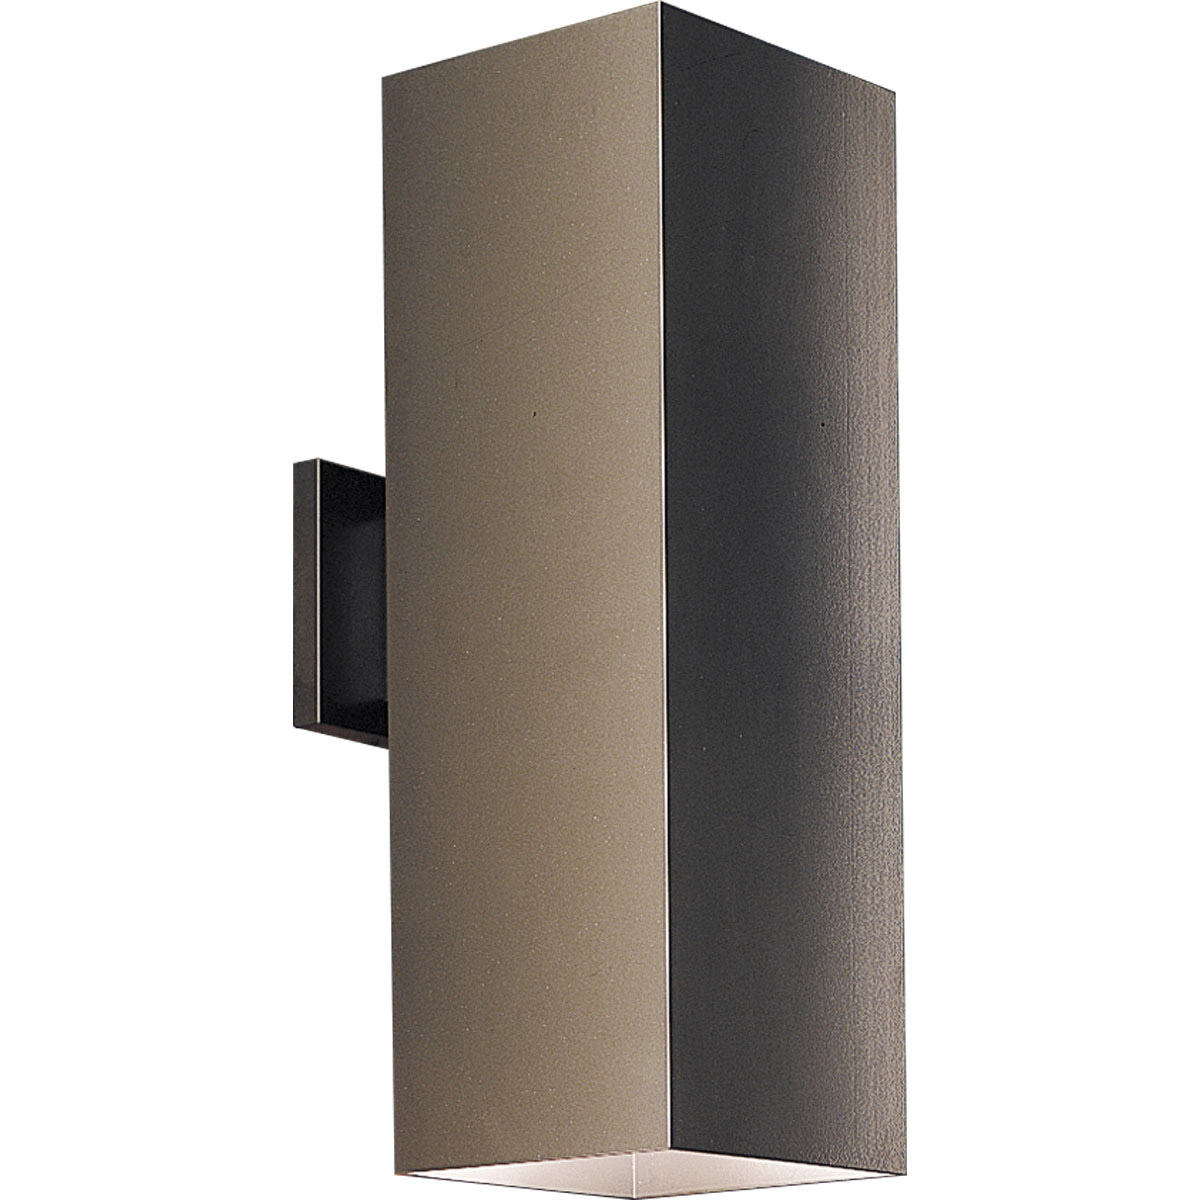 Lighting P5644-20 Square Outdoor Wall Mount Fixture